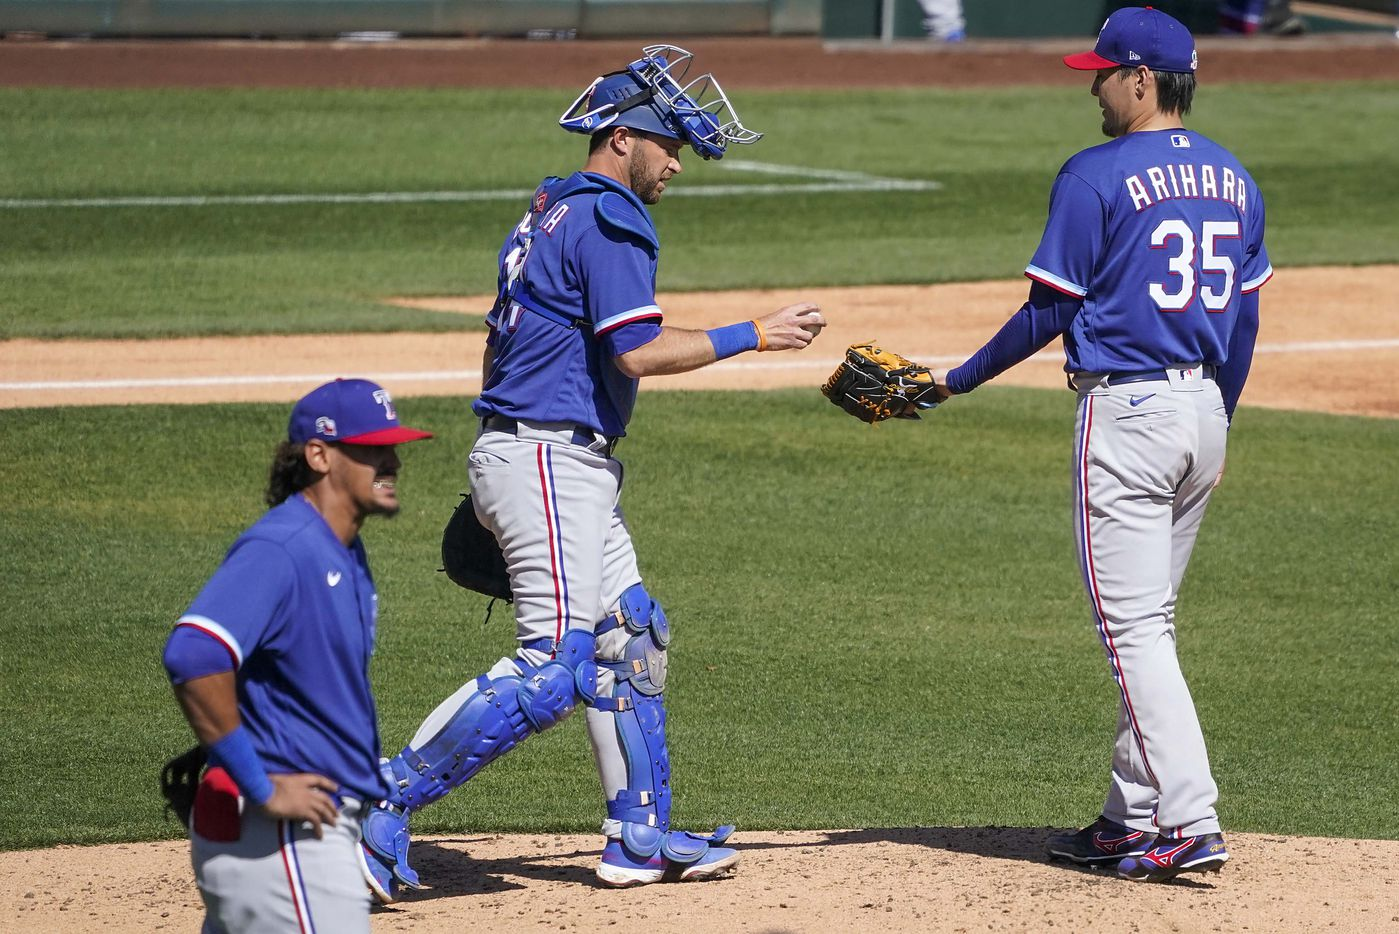 Texas Rangers pitcher Kohei Arihara (35) gets a visit from catcher Drew Butera  after giving up a single to load the bases during the second inning of a spring training game against the Chicago White Sox at Camelback Ranch on Tuesday, March 2, 2021, in Phoenix, Ariz.